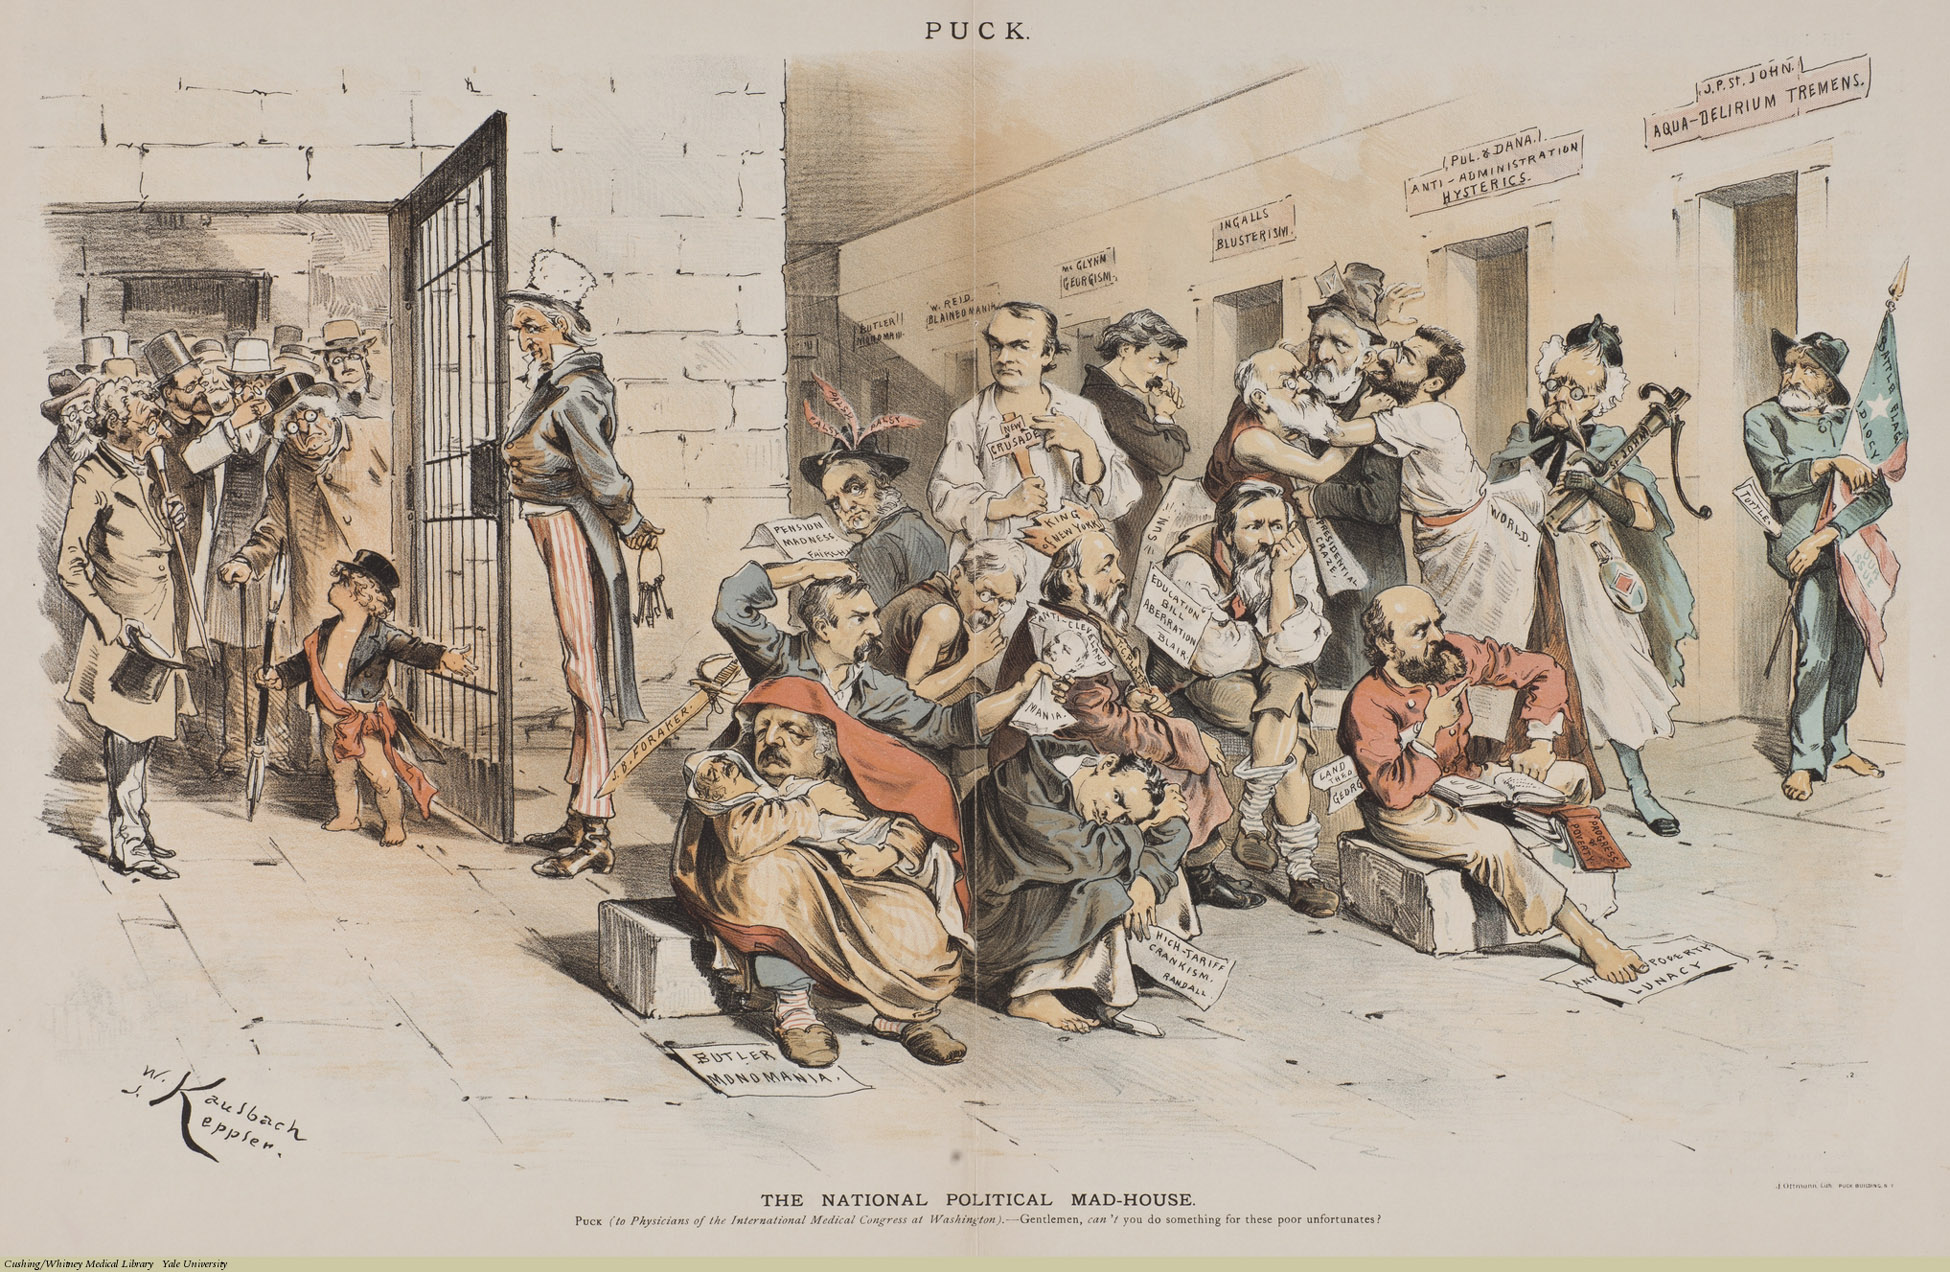 The National Political Mad-House. W. Kaulbauch and J. Keppler, Chromolithograph, 1887. Subject: U.S. Politics, Psychiatric Patients, Psychiatric Hospitals, Psychiatry, Uncle Sam.